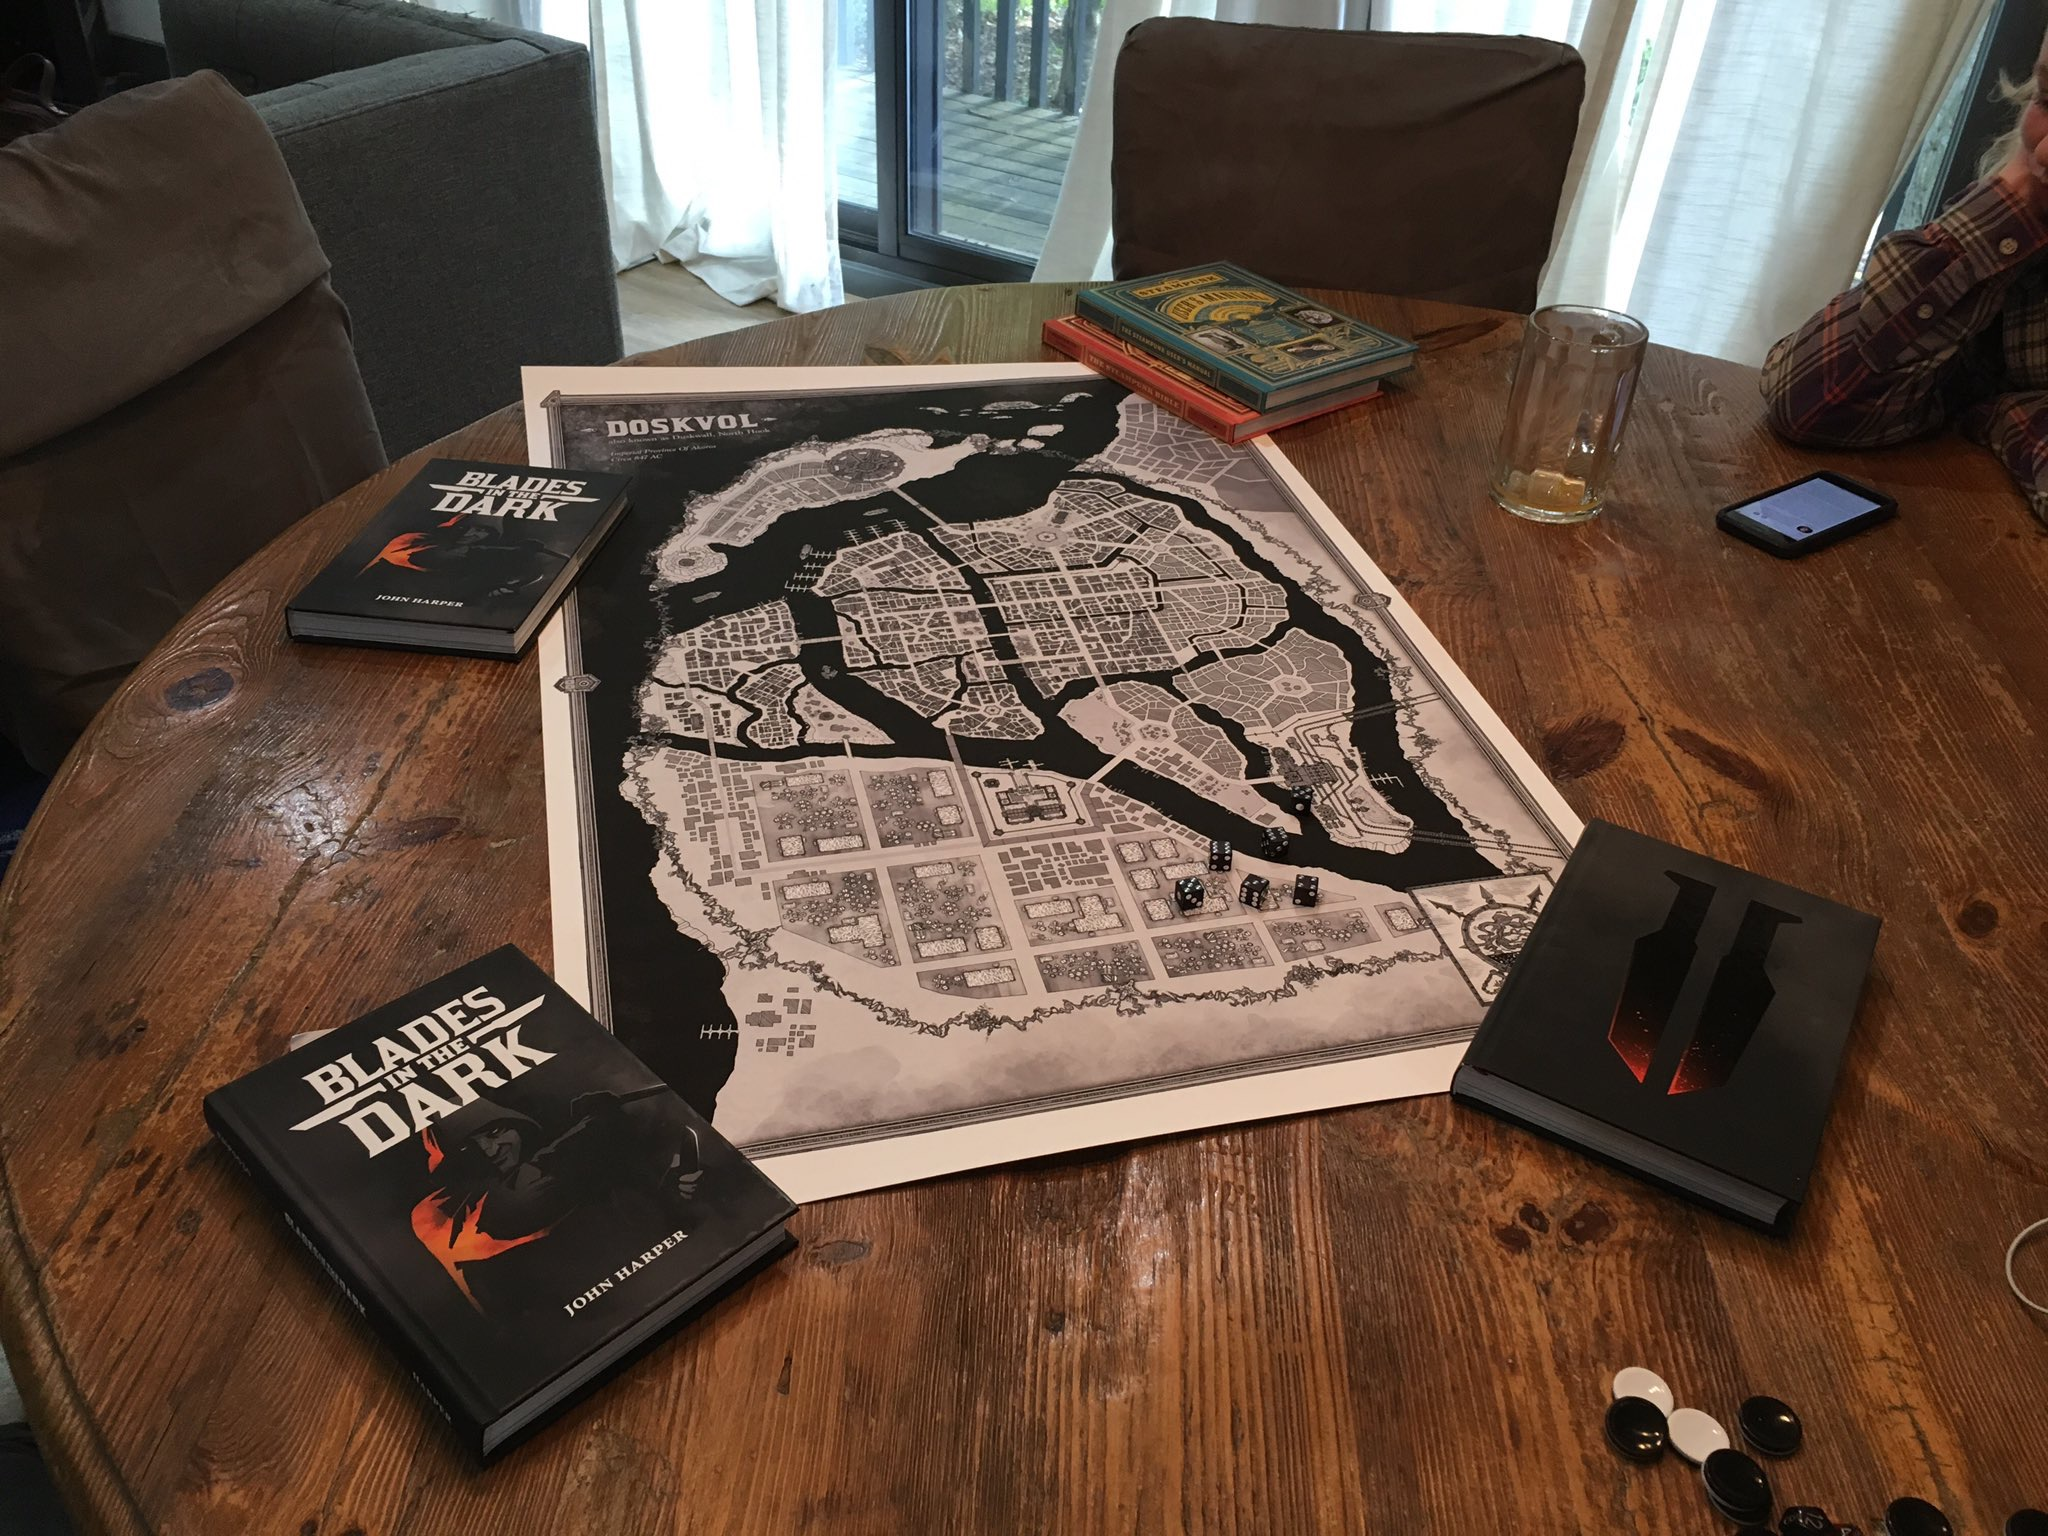 Photo of a gaming table with a large map of Duskvol and several copies of Blades in the Dark.